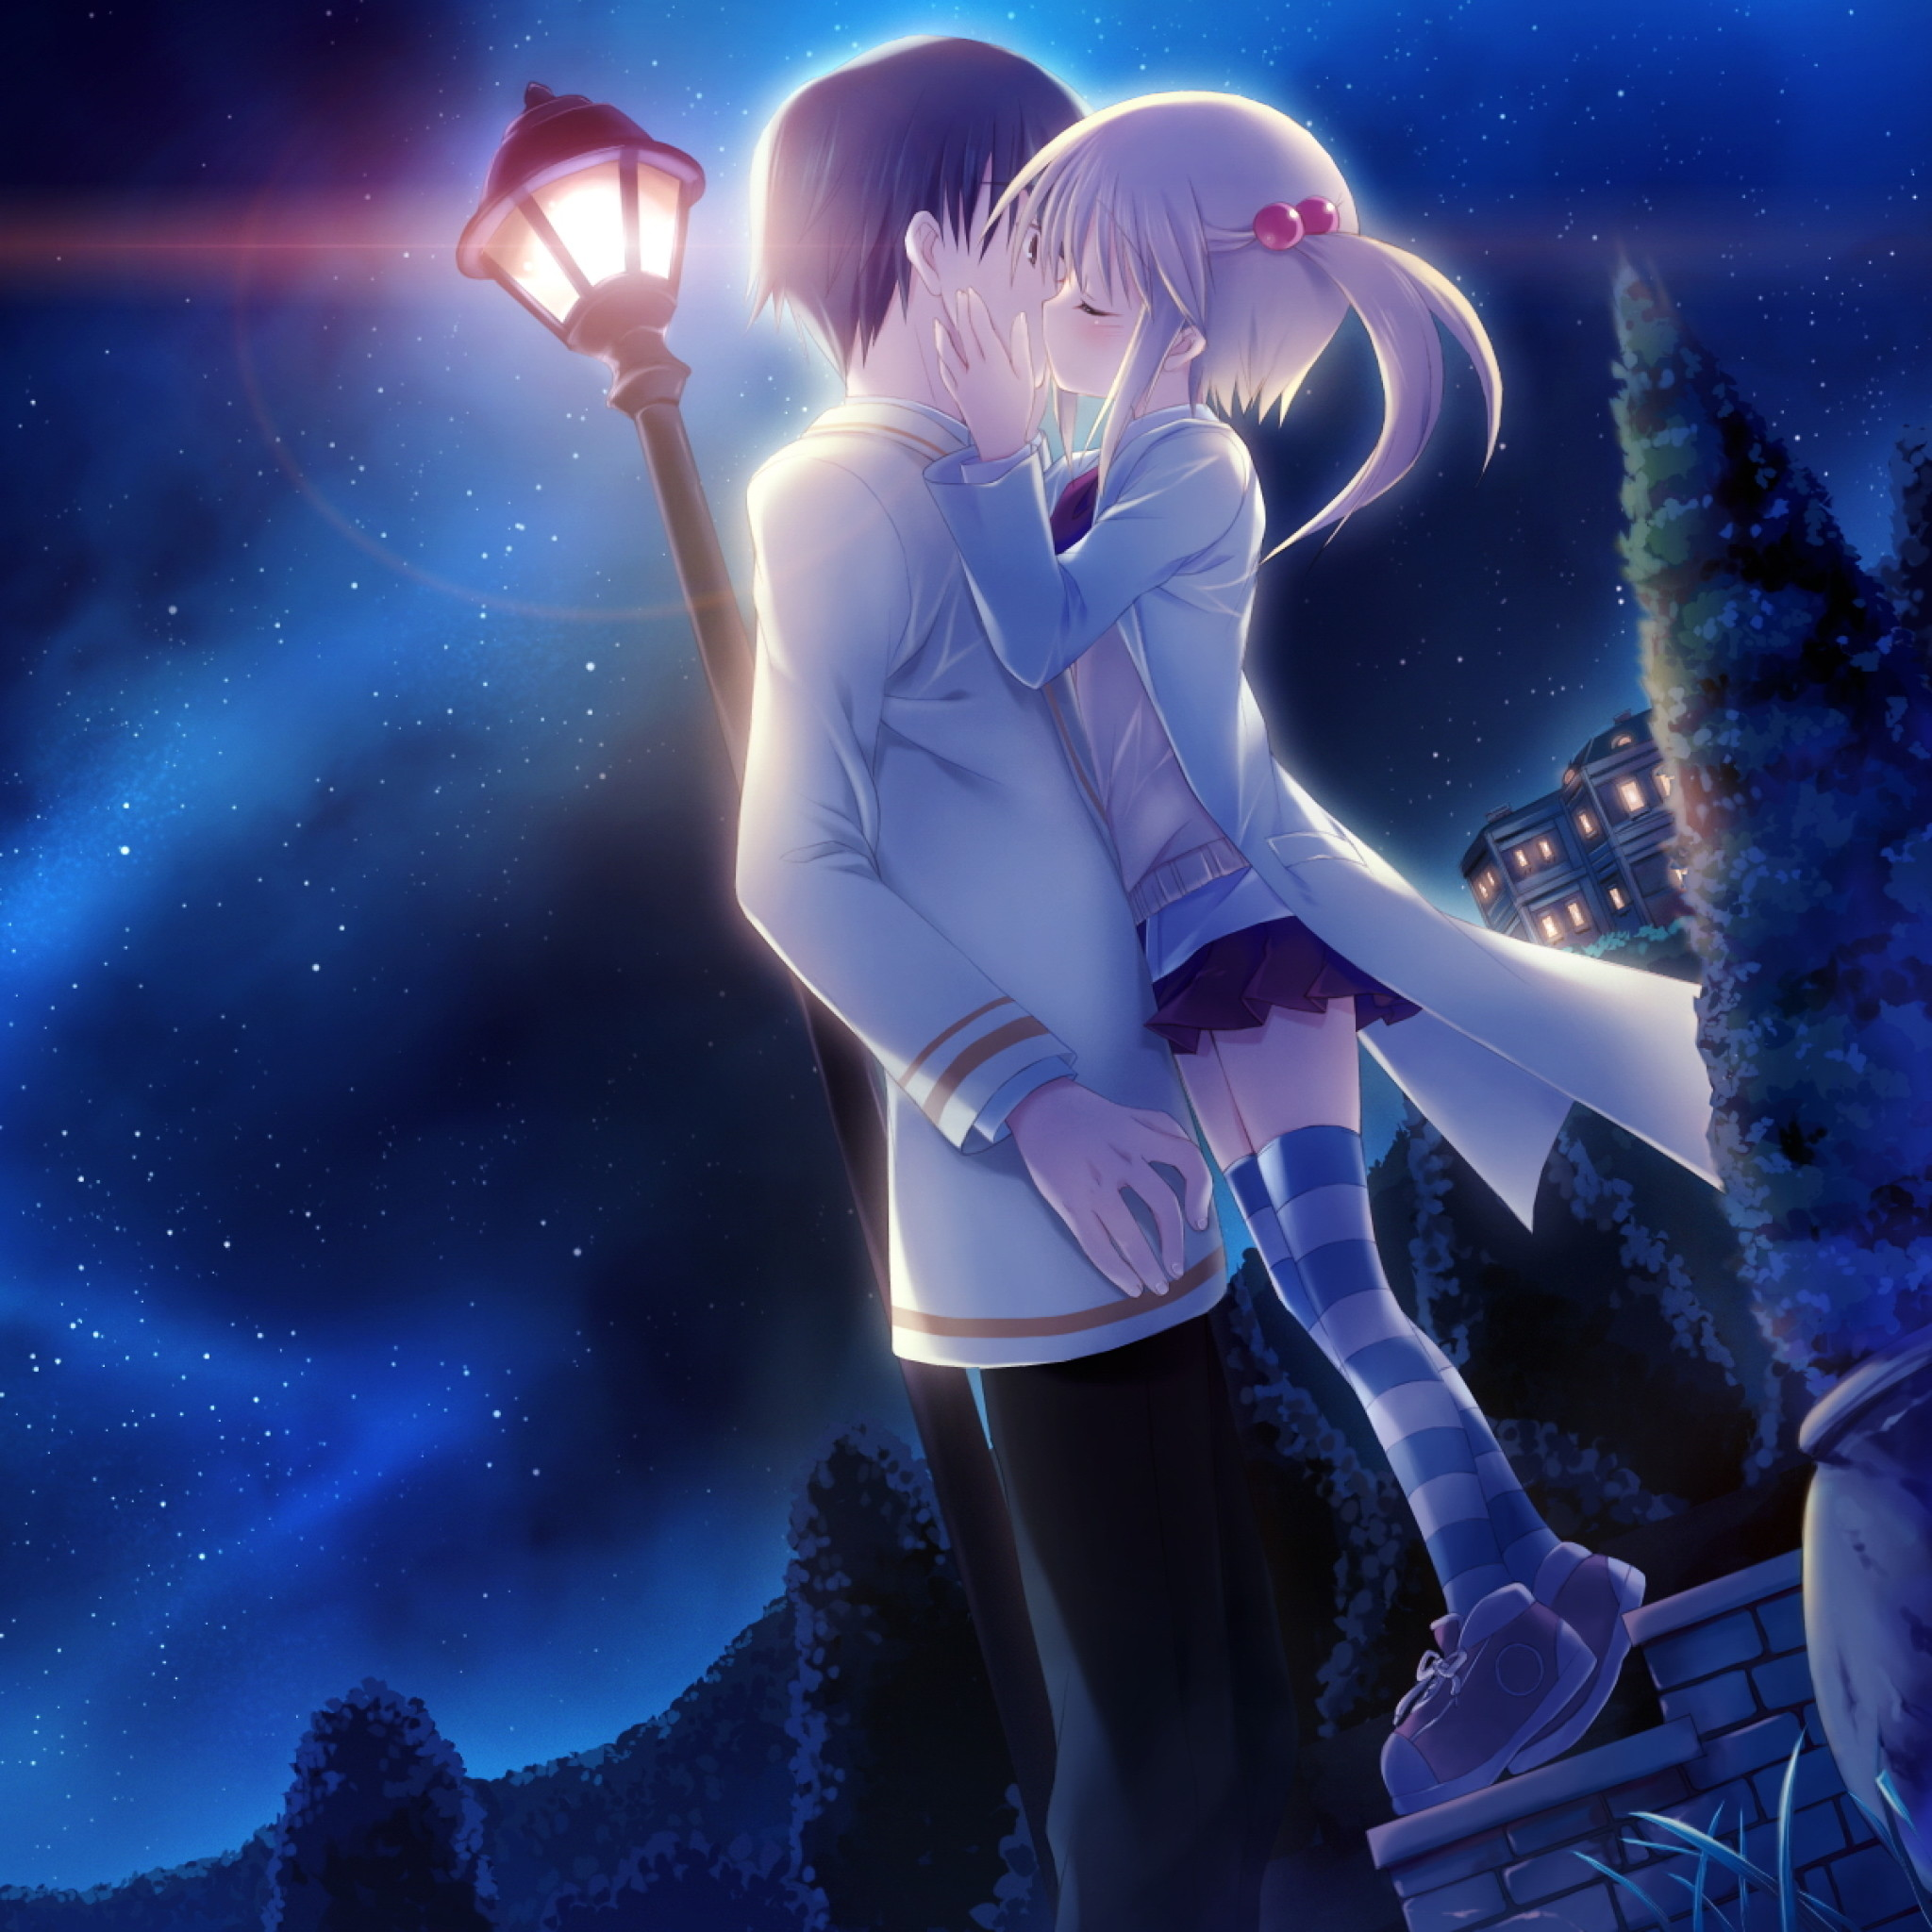 Wallpaper Anime Love (68+ pictures)